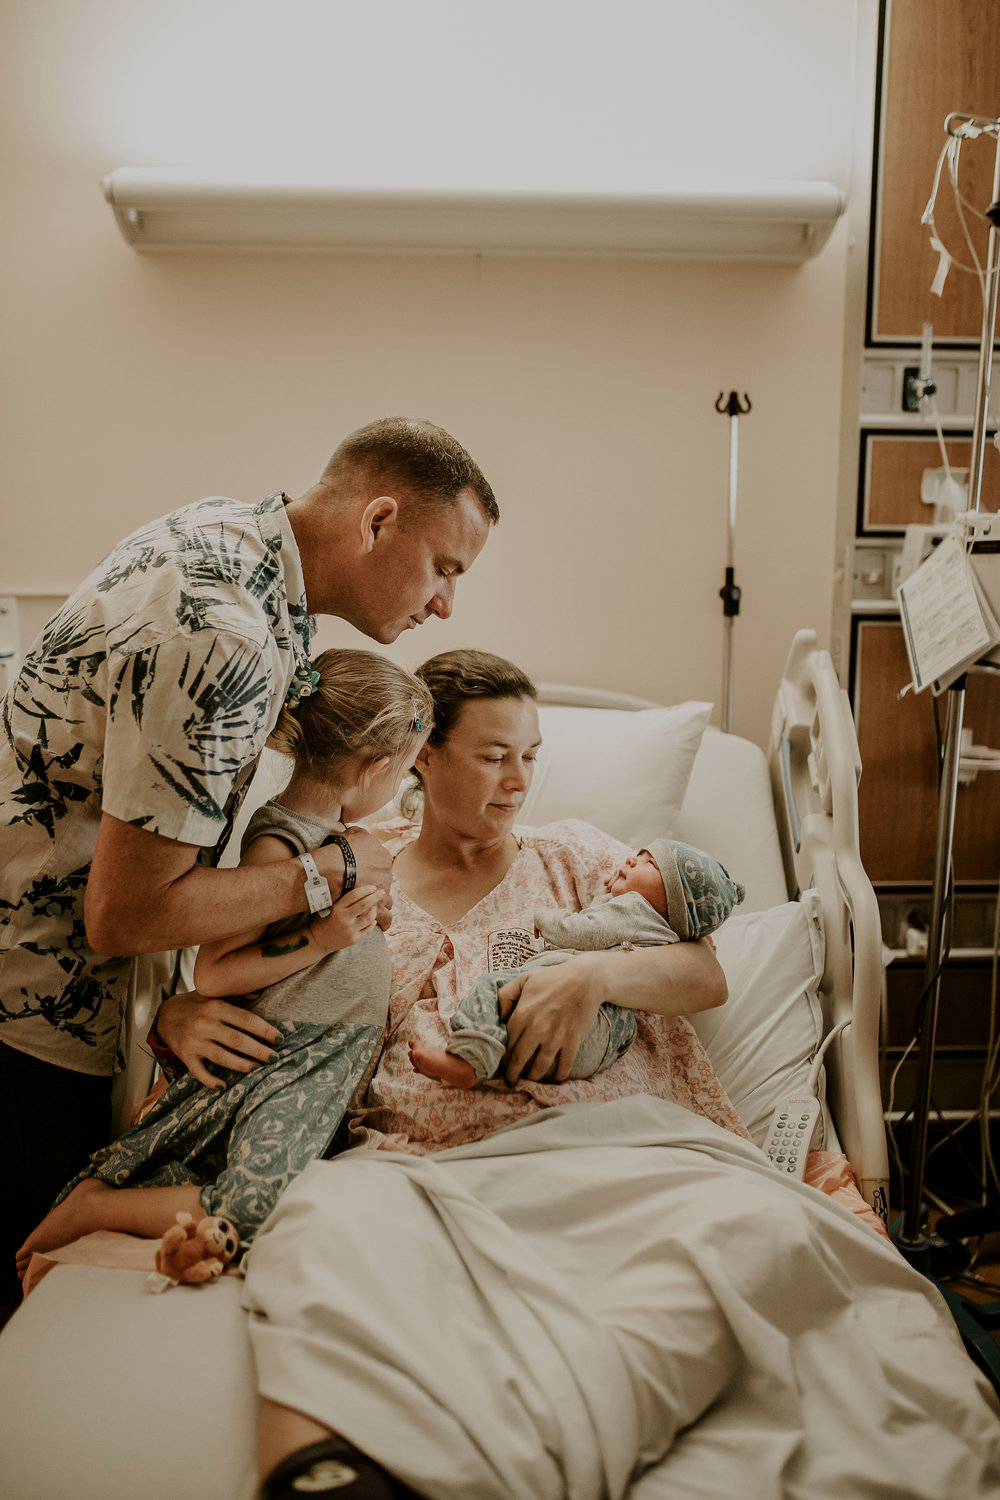 in-hospital-newborn-session-birth-photographer-hawaii-23.jpg